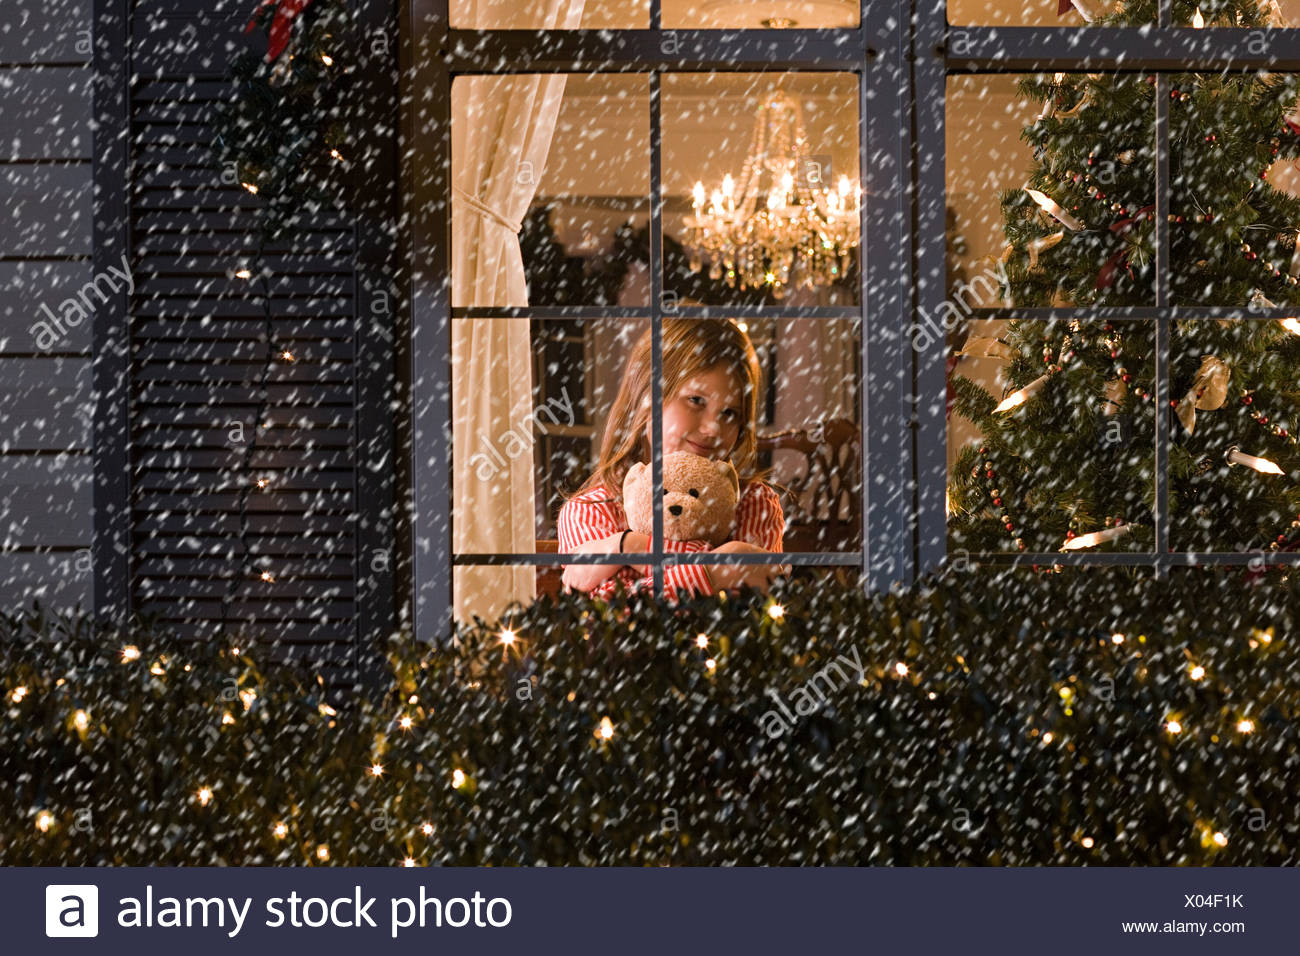 Girl looking at snow - Stock Image